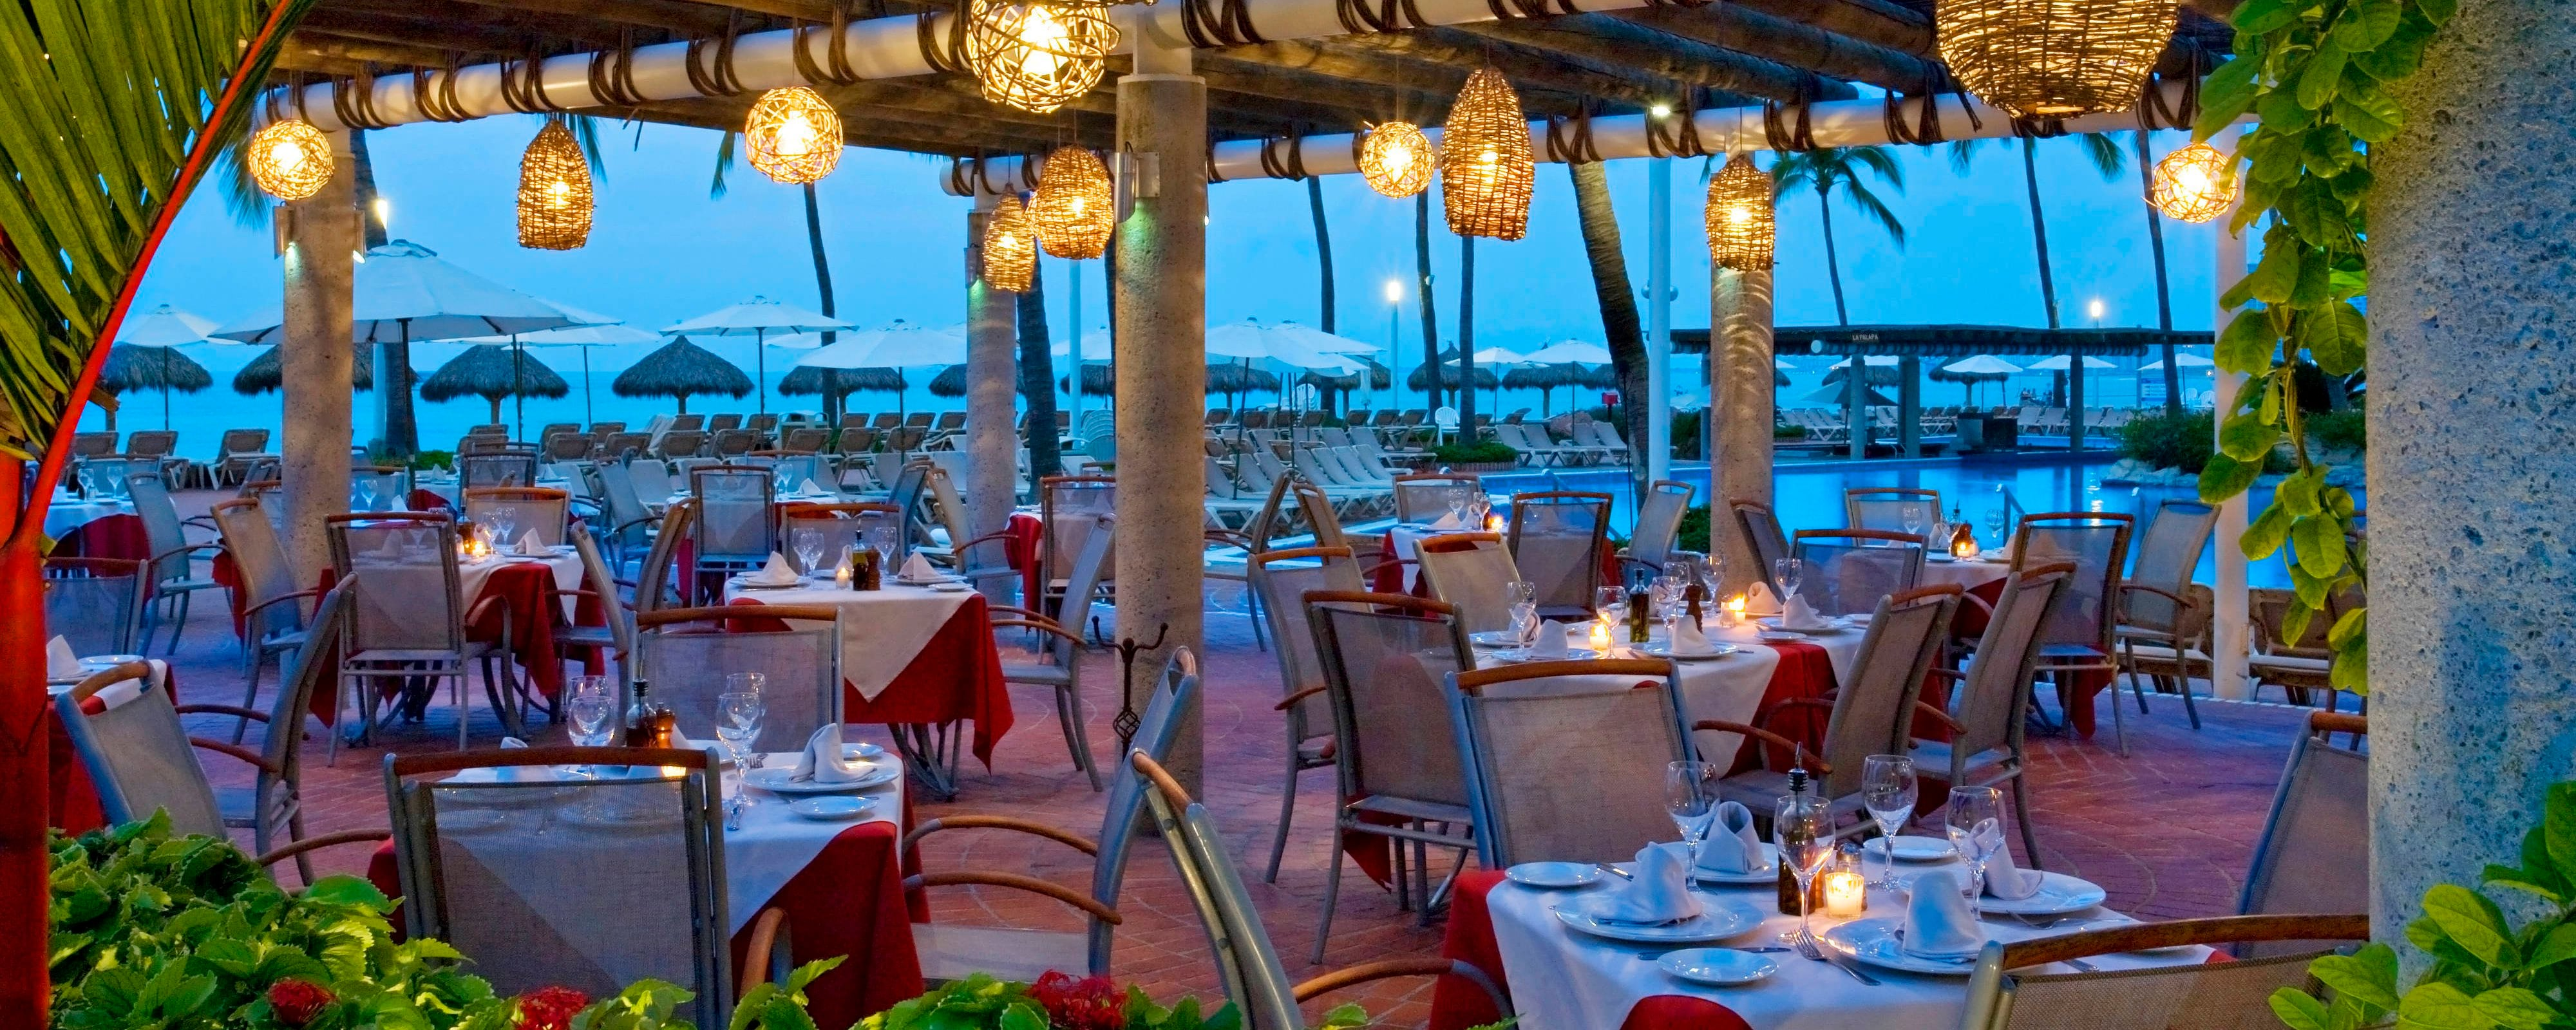 Restaurants in Puerto Vallarta with a View  Sheraton